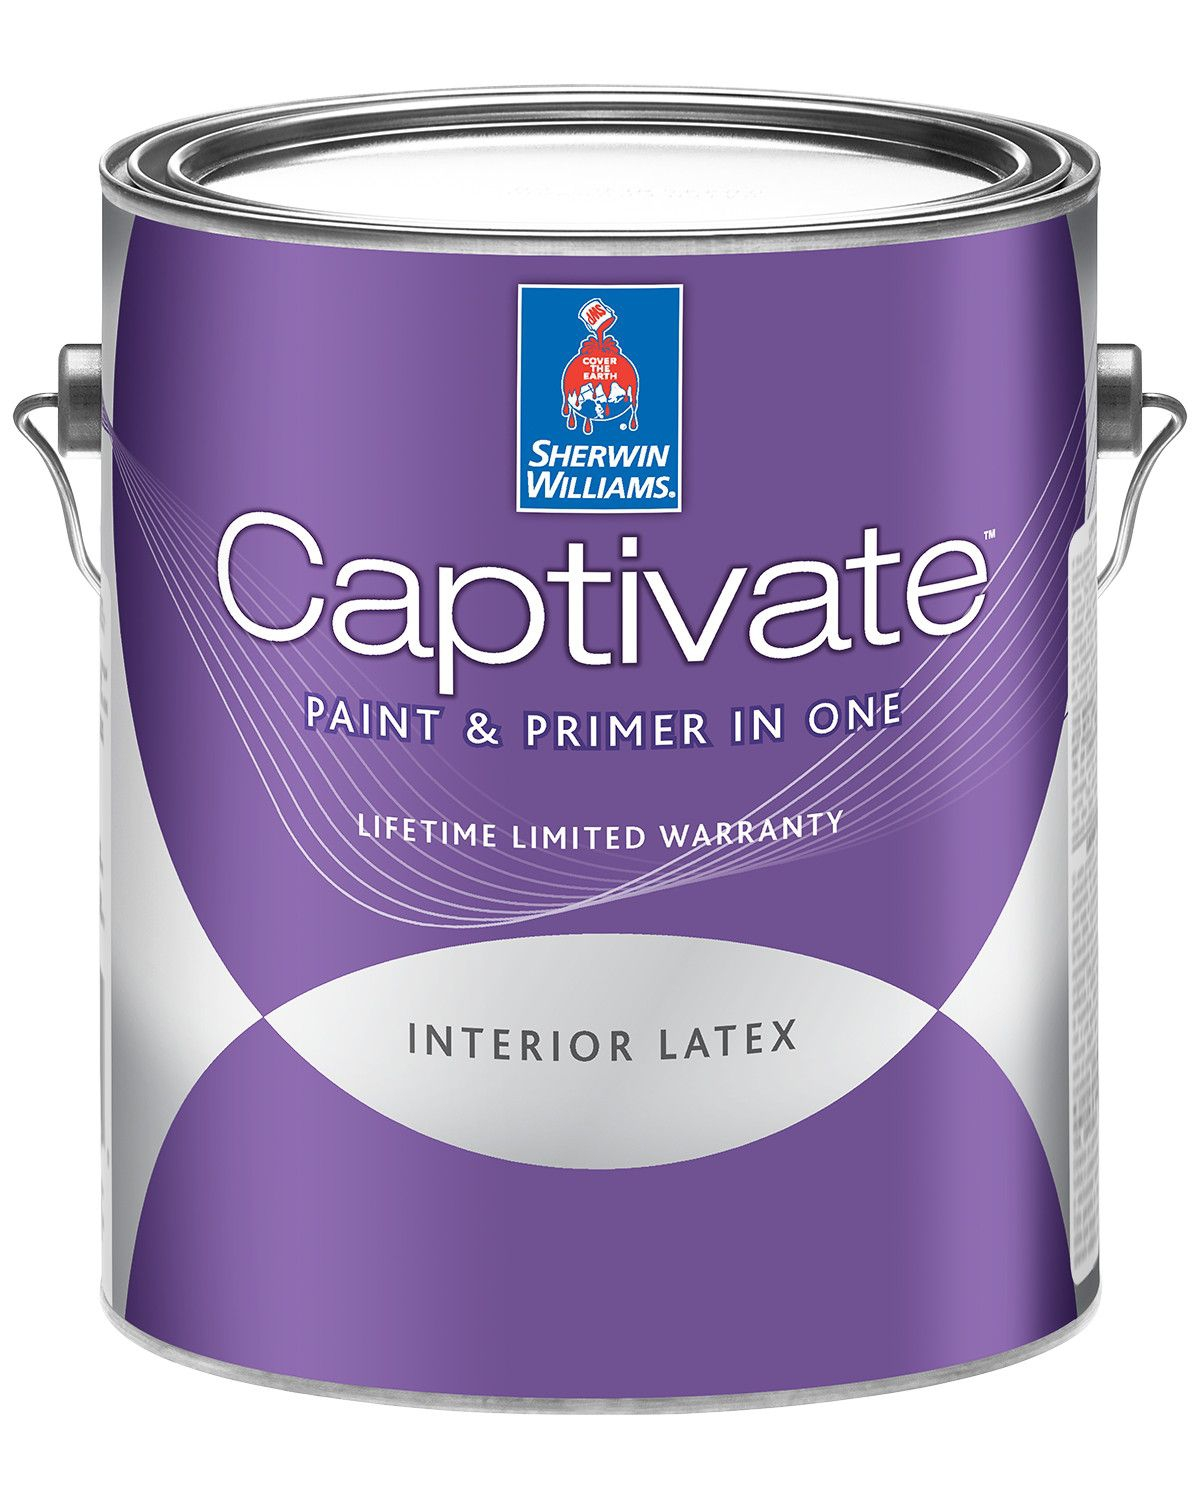 Captivate Interior Latex Sherwinwilliams